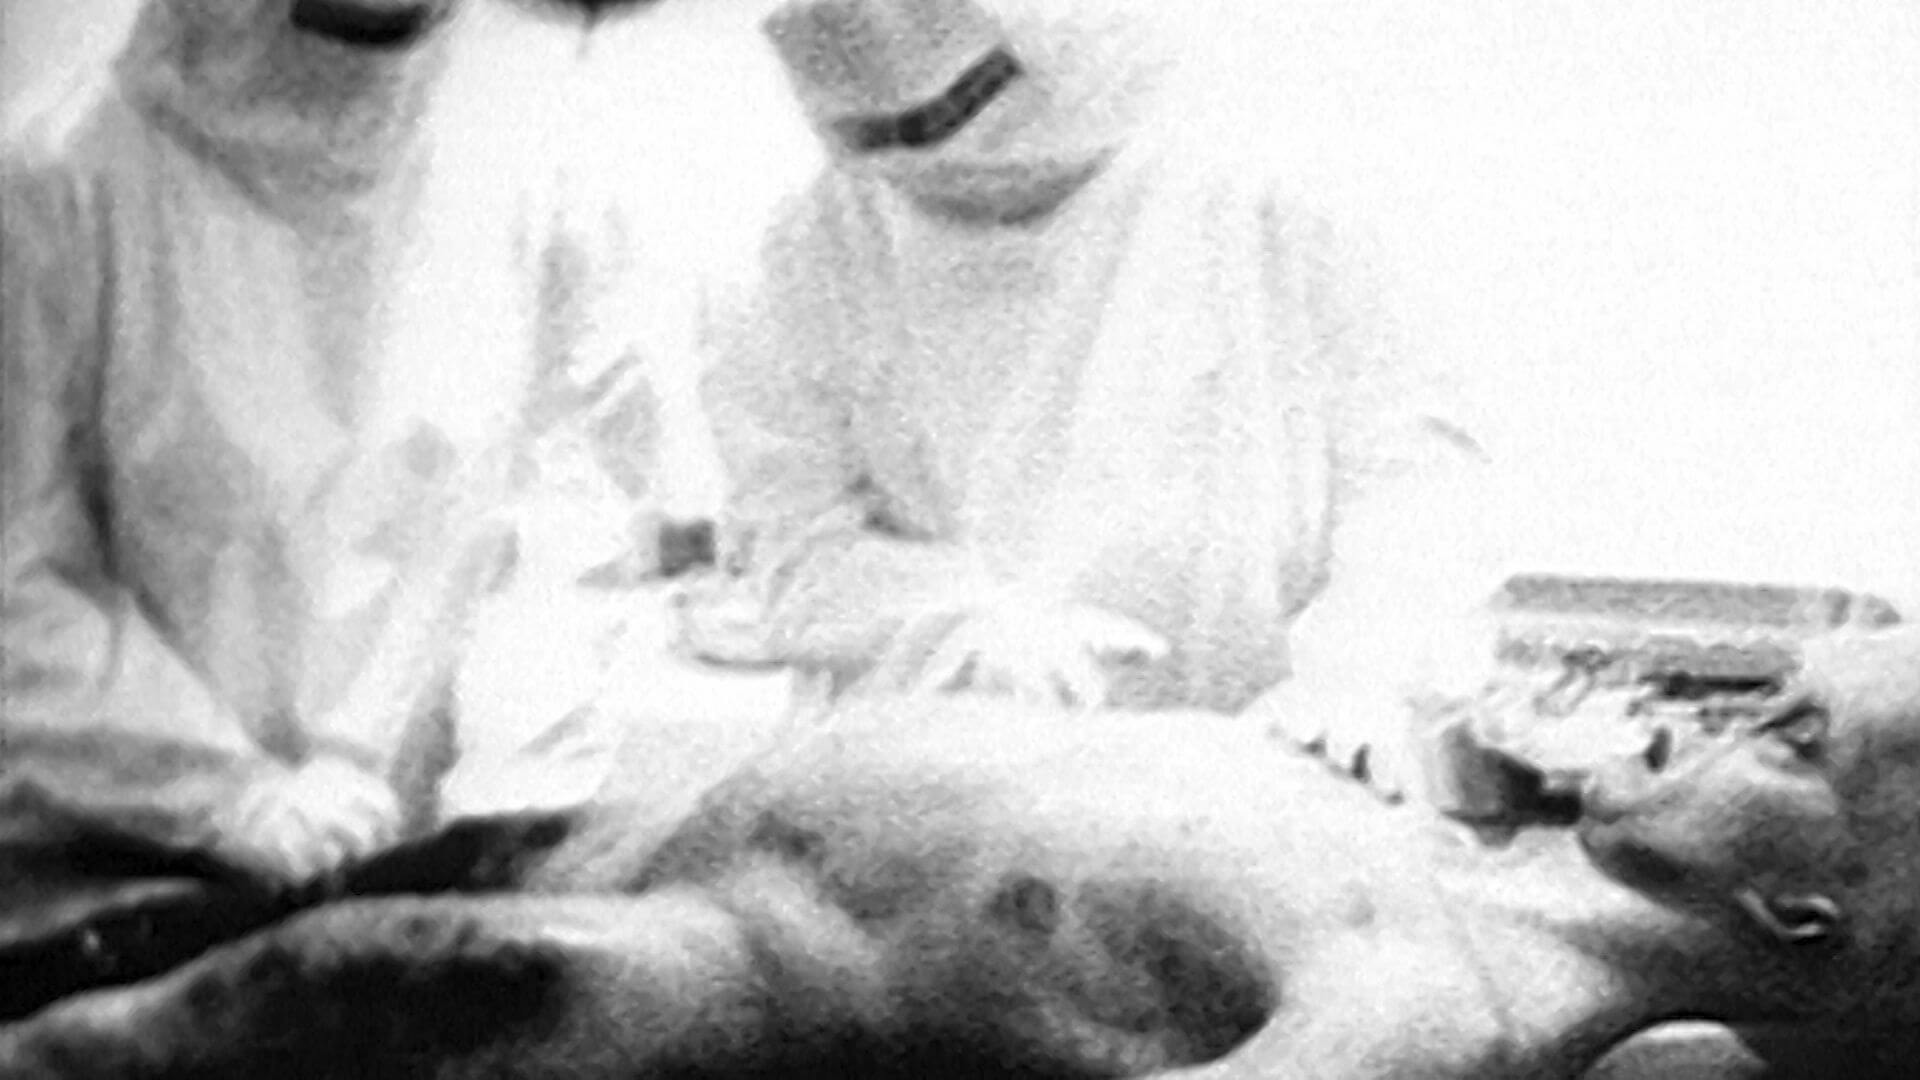 alien autopsy the search for answers